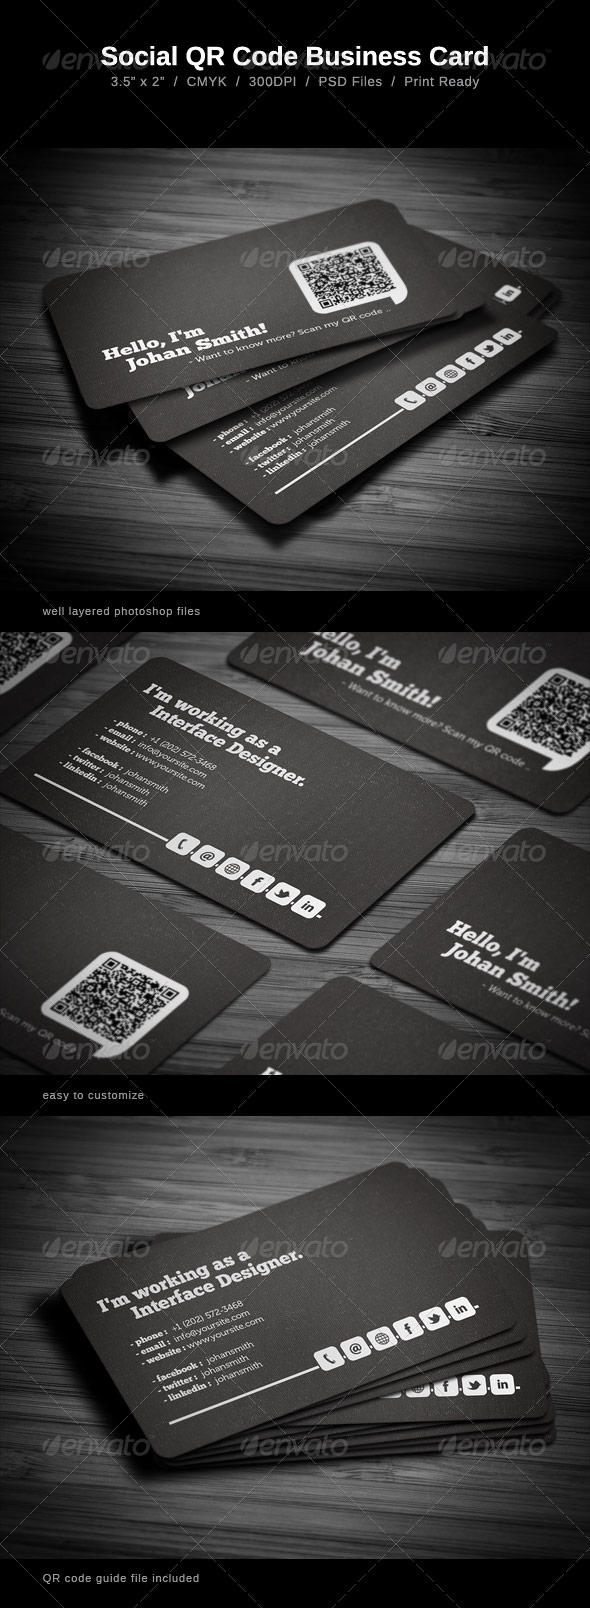 5 noteworthy back of business cards ideas business card qr back of card template wajeb Gallery